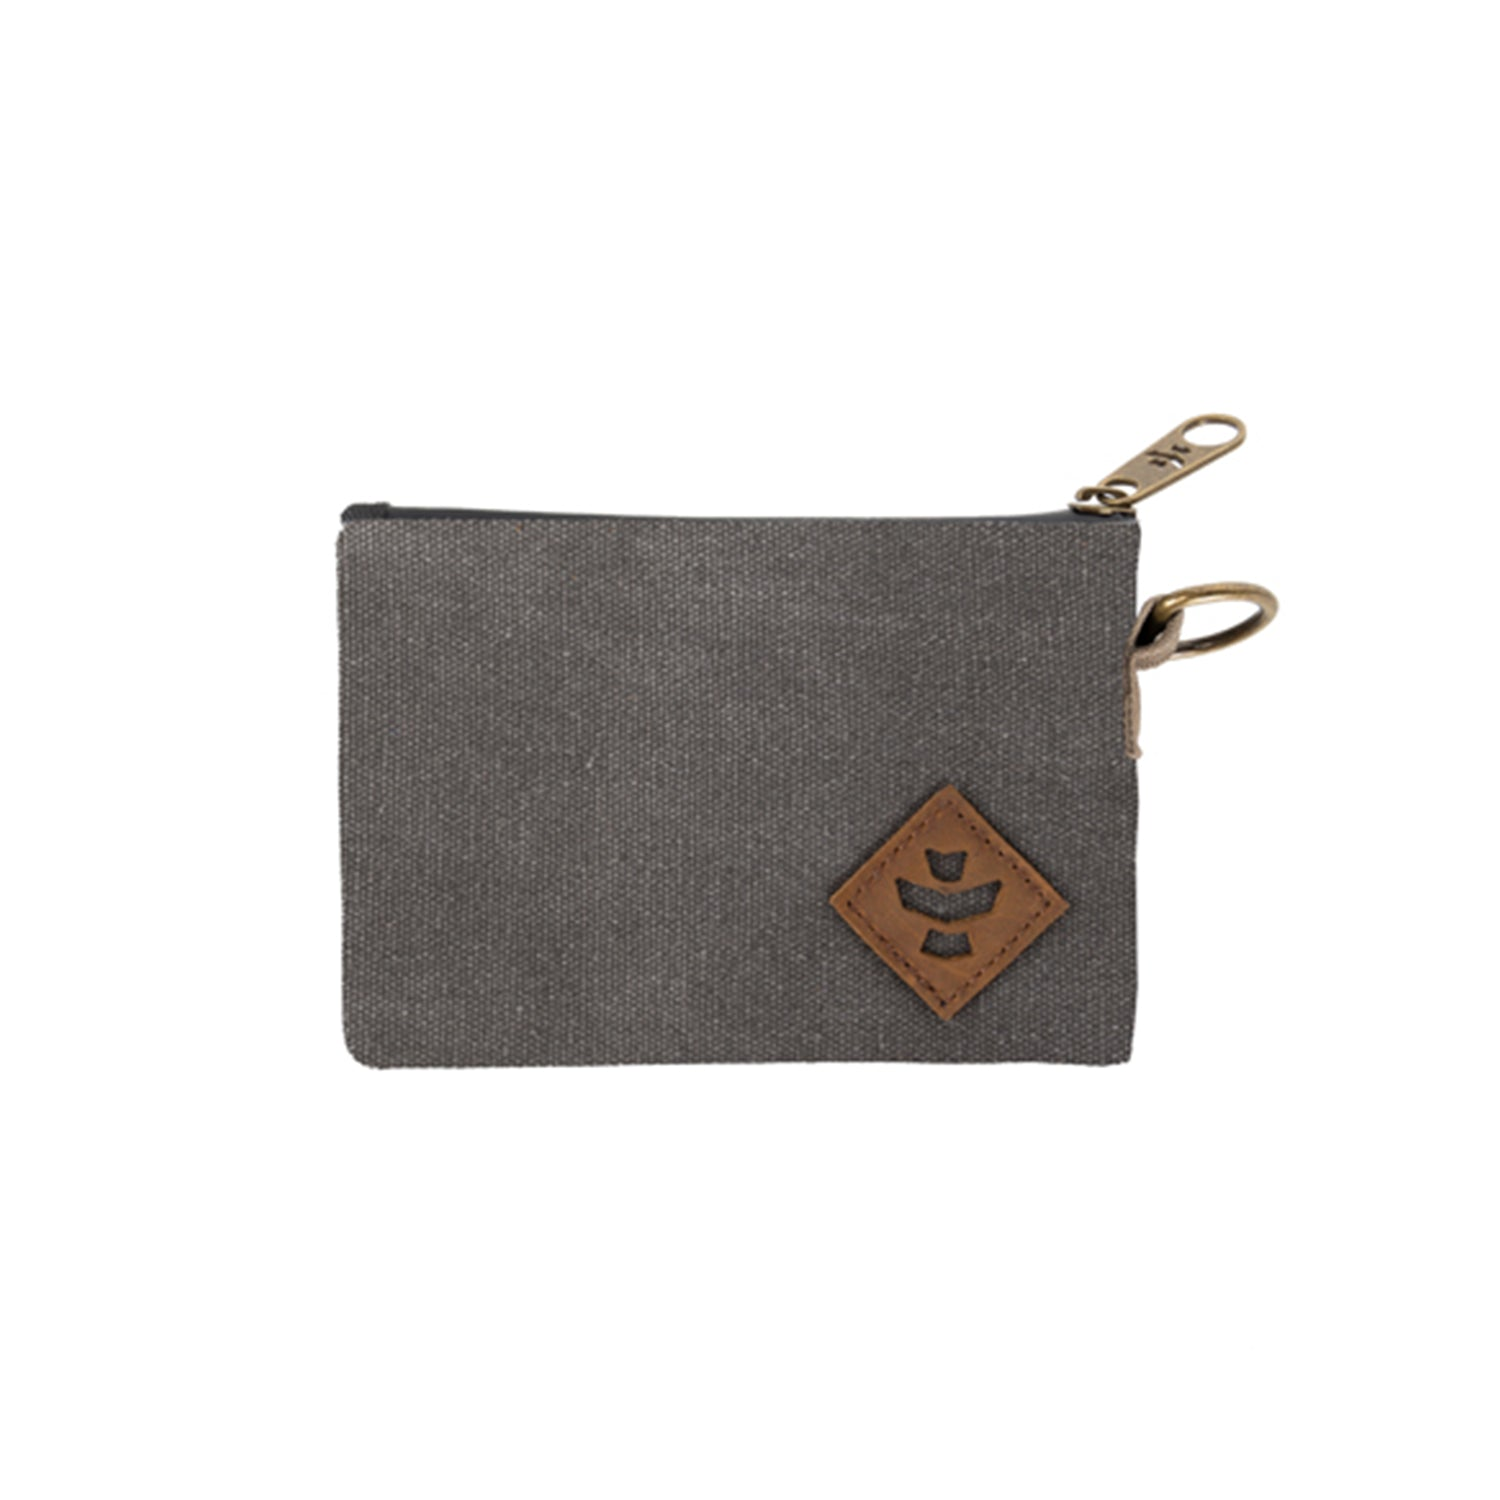 Ash Canvas Smell Proof Water Resistant Small Zipper Bank Bag